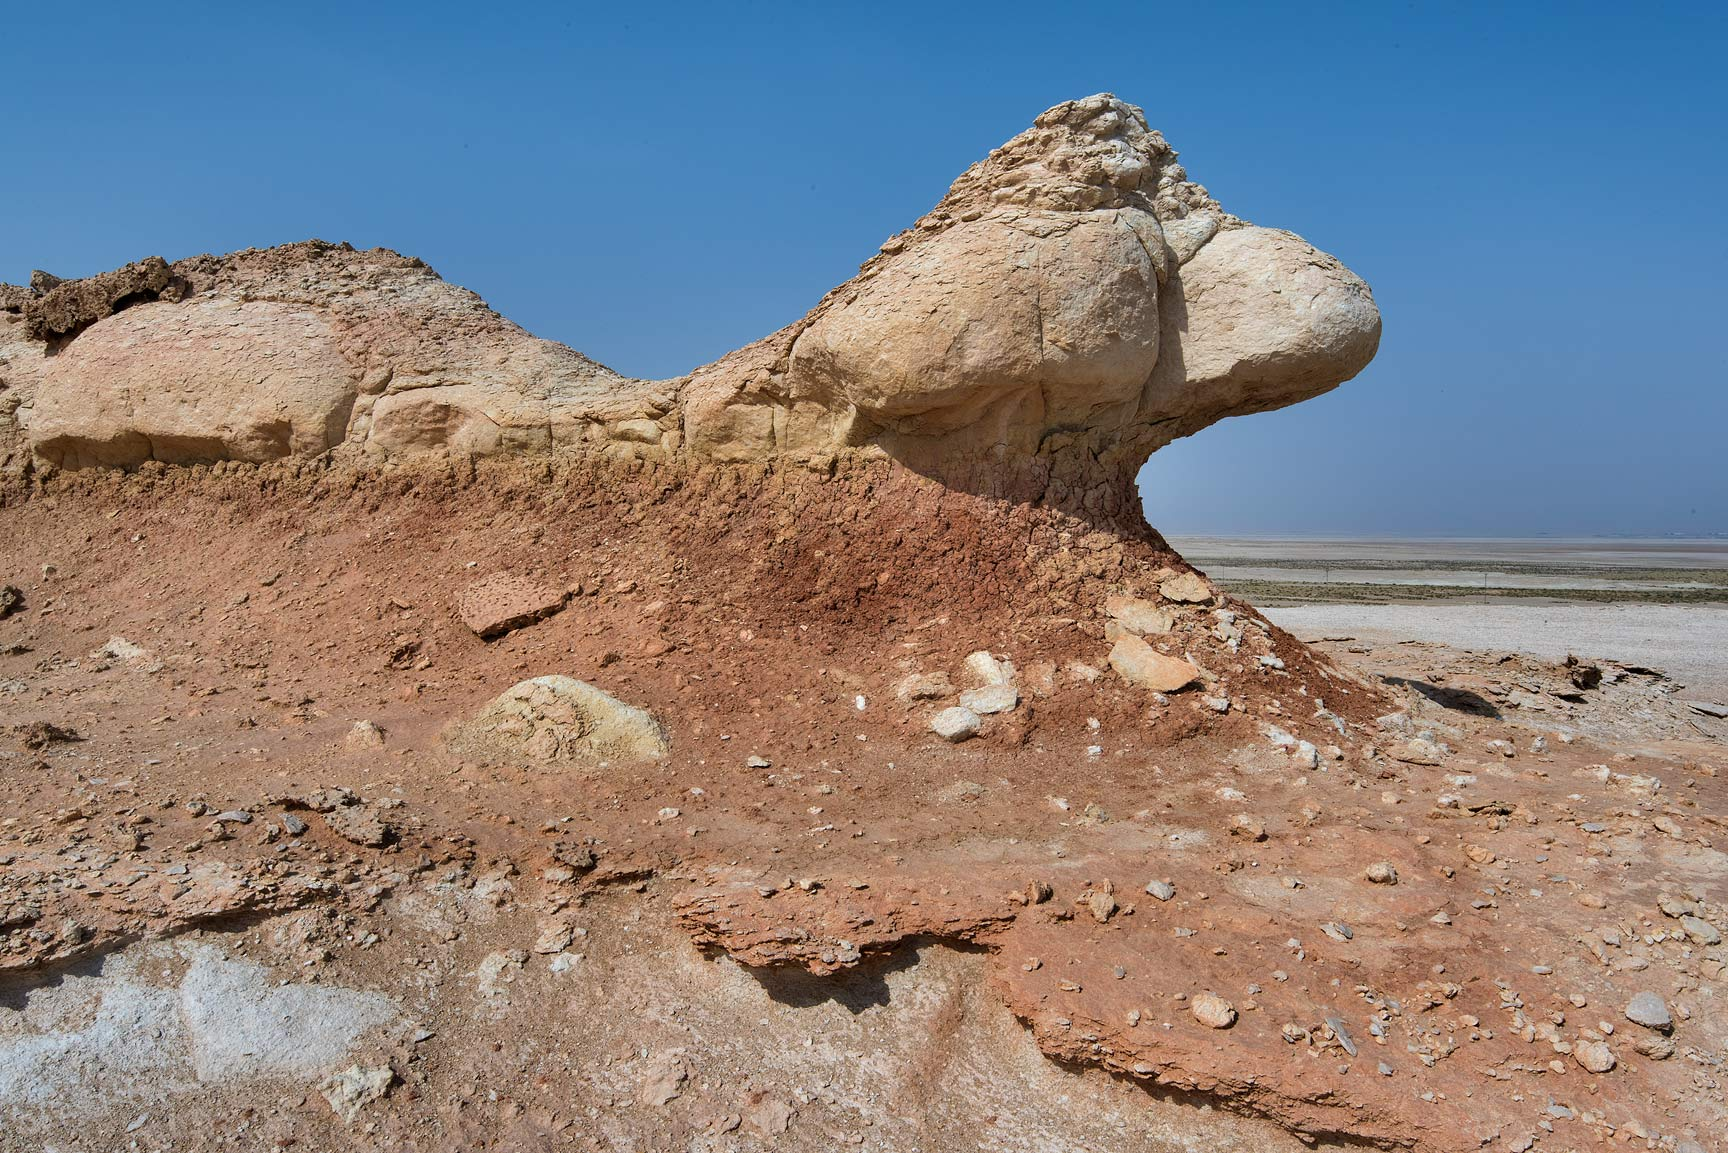 Limestone wind erosion on the tabletop hill in...Reserve near Abu Samra. Southern Qatar